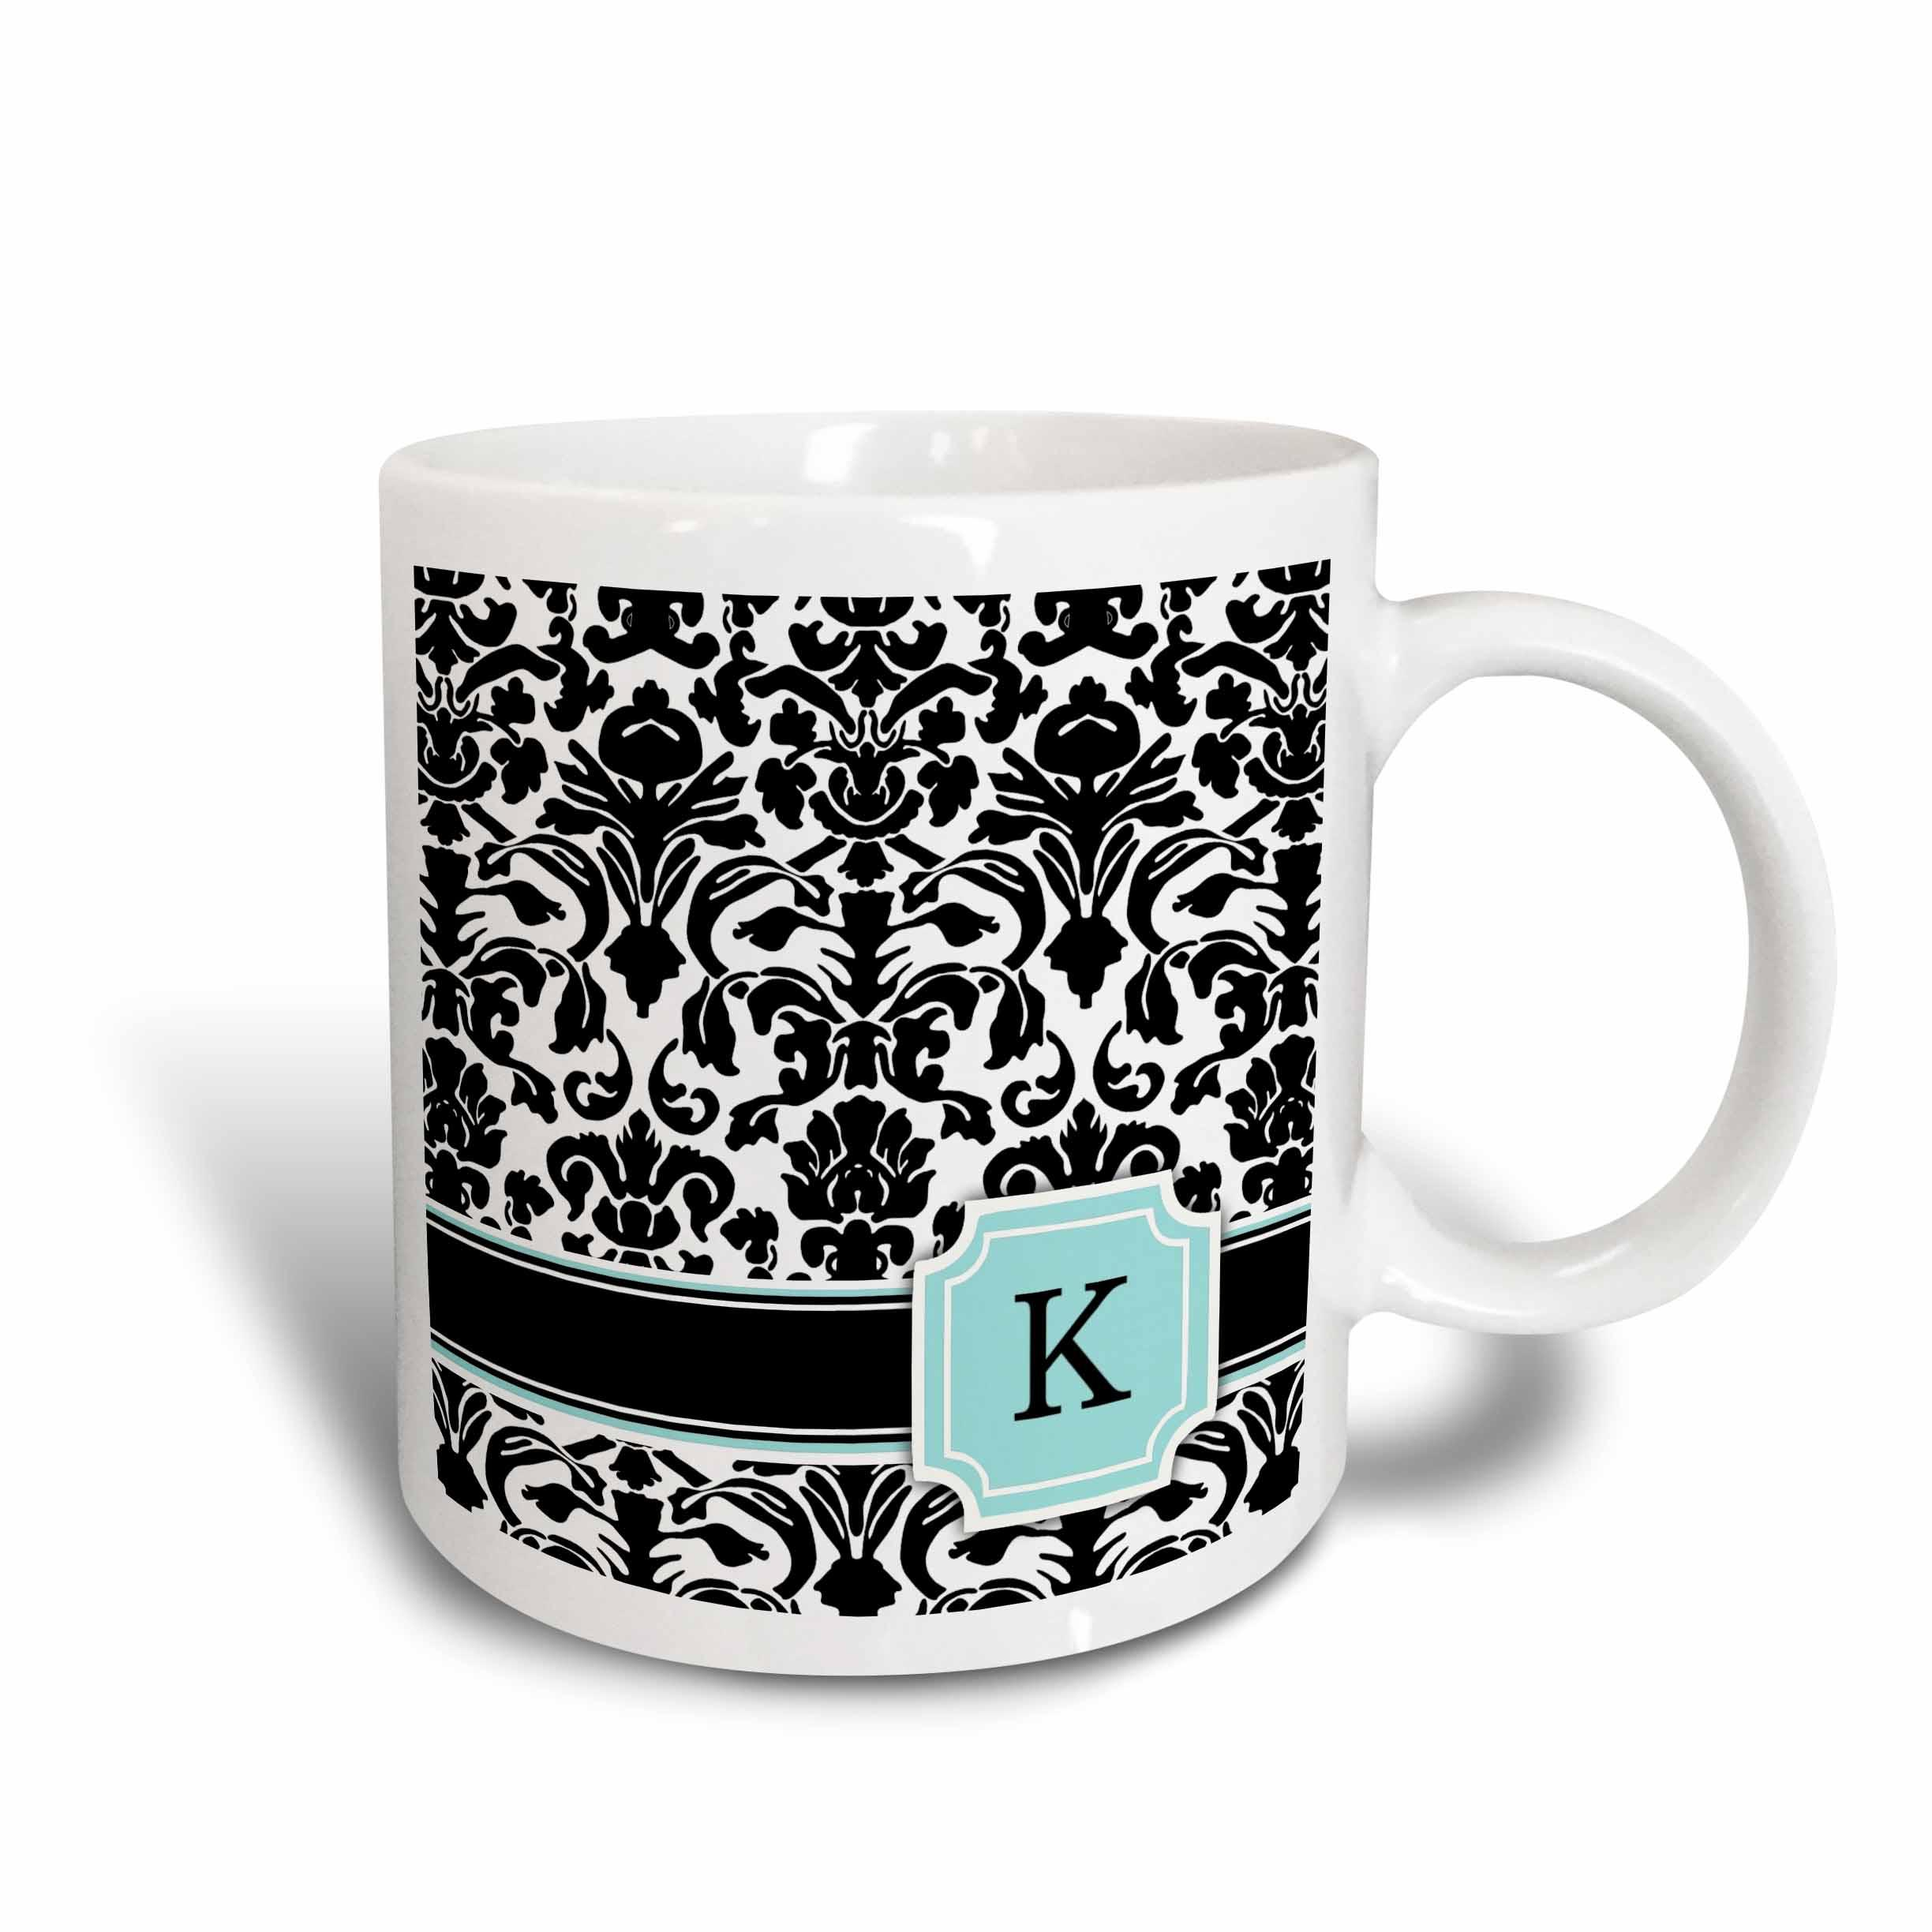 3dRose Letter K personal monogrammed mint blue black and white damask pattern - classy personalized initial, Ceramic Mug, 15-ounce